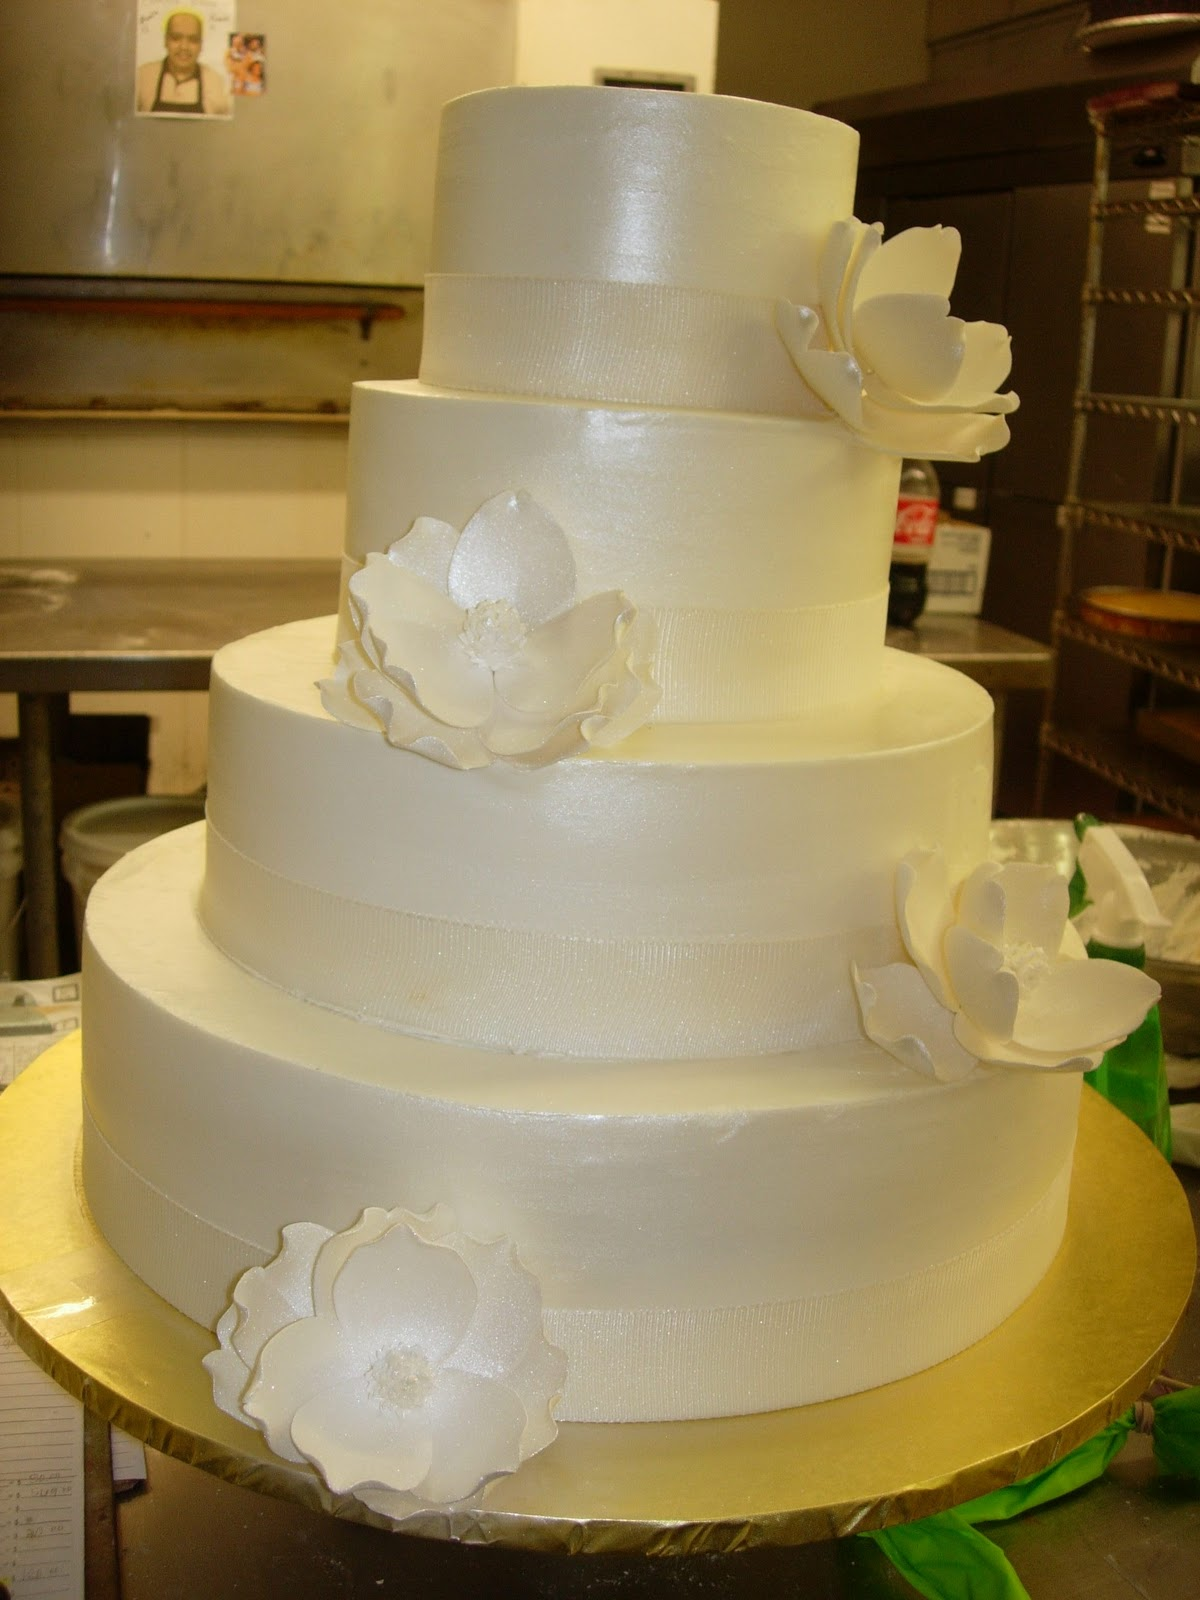 Recent Cake Creations By Delicious Cakes